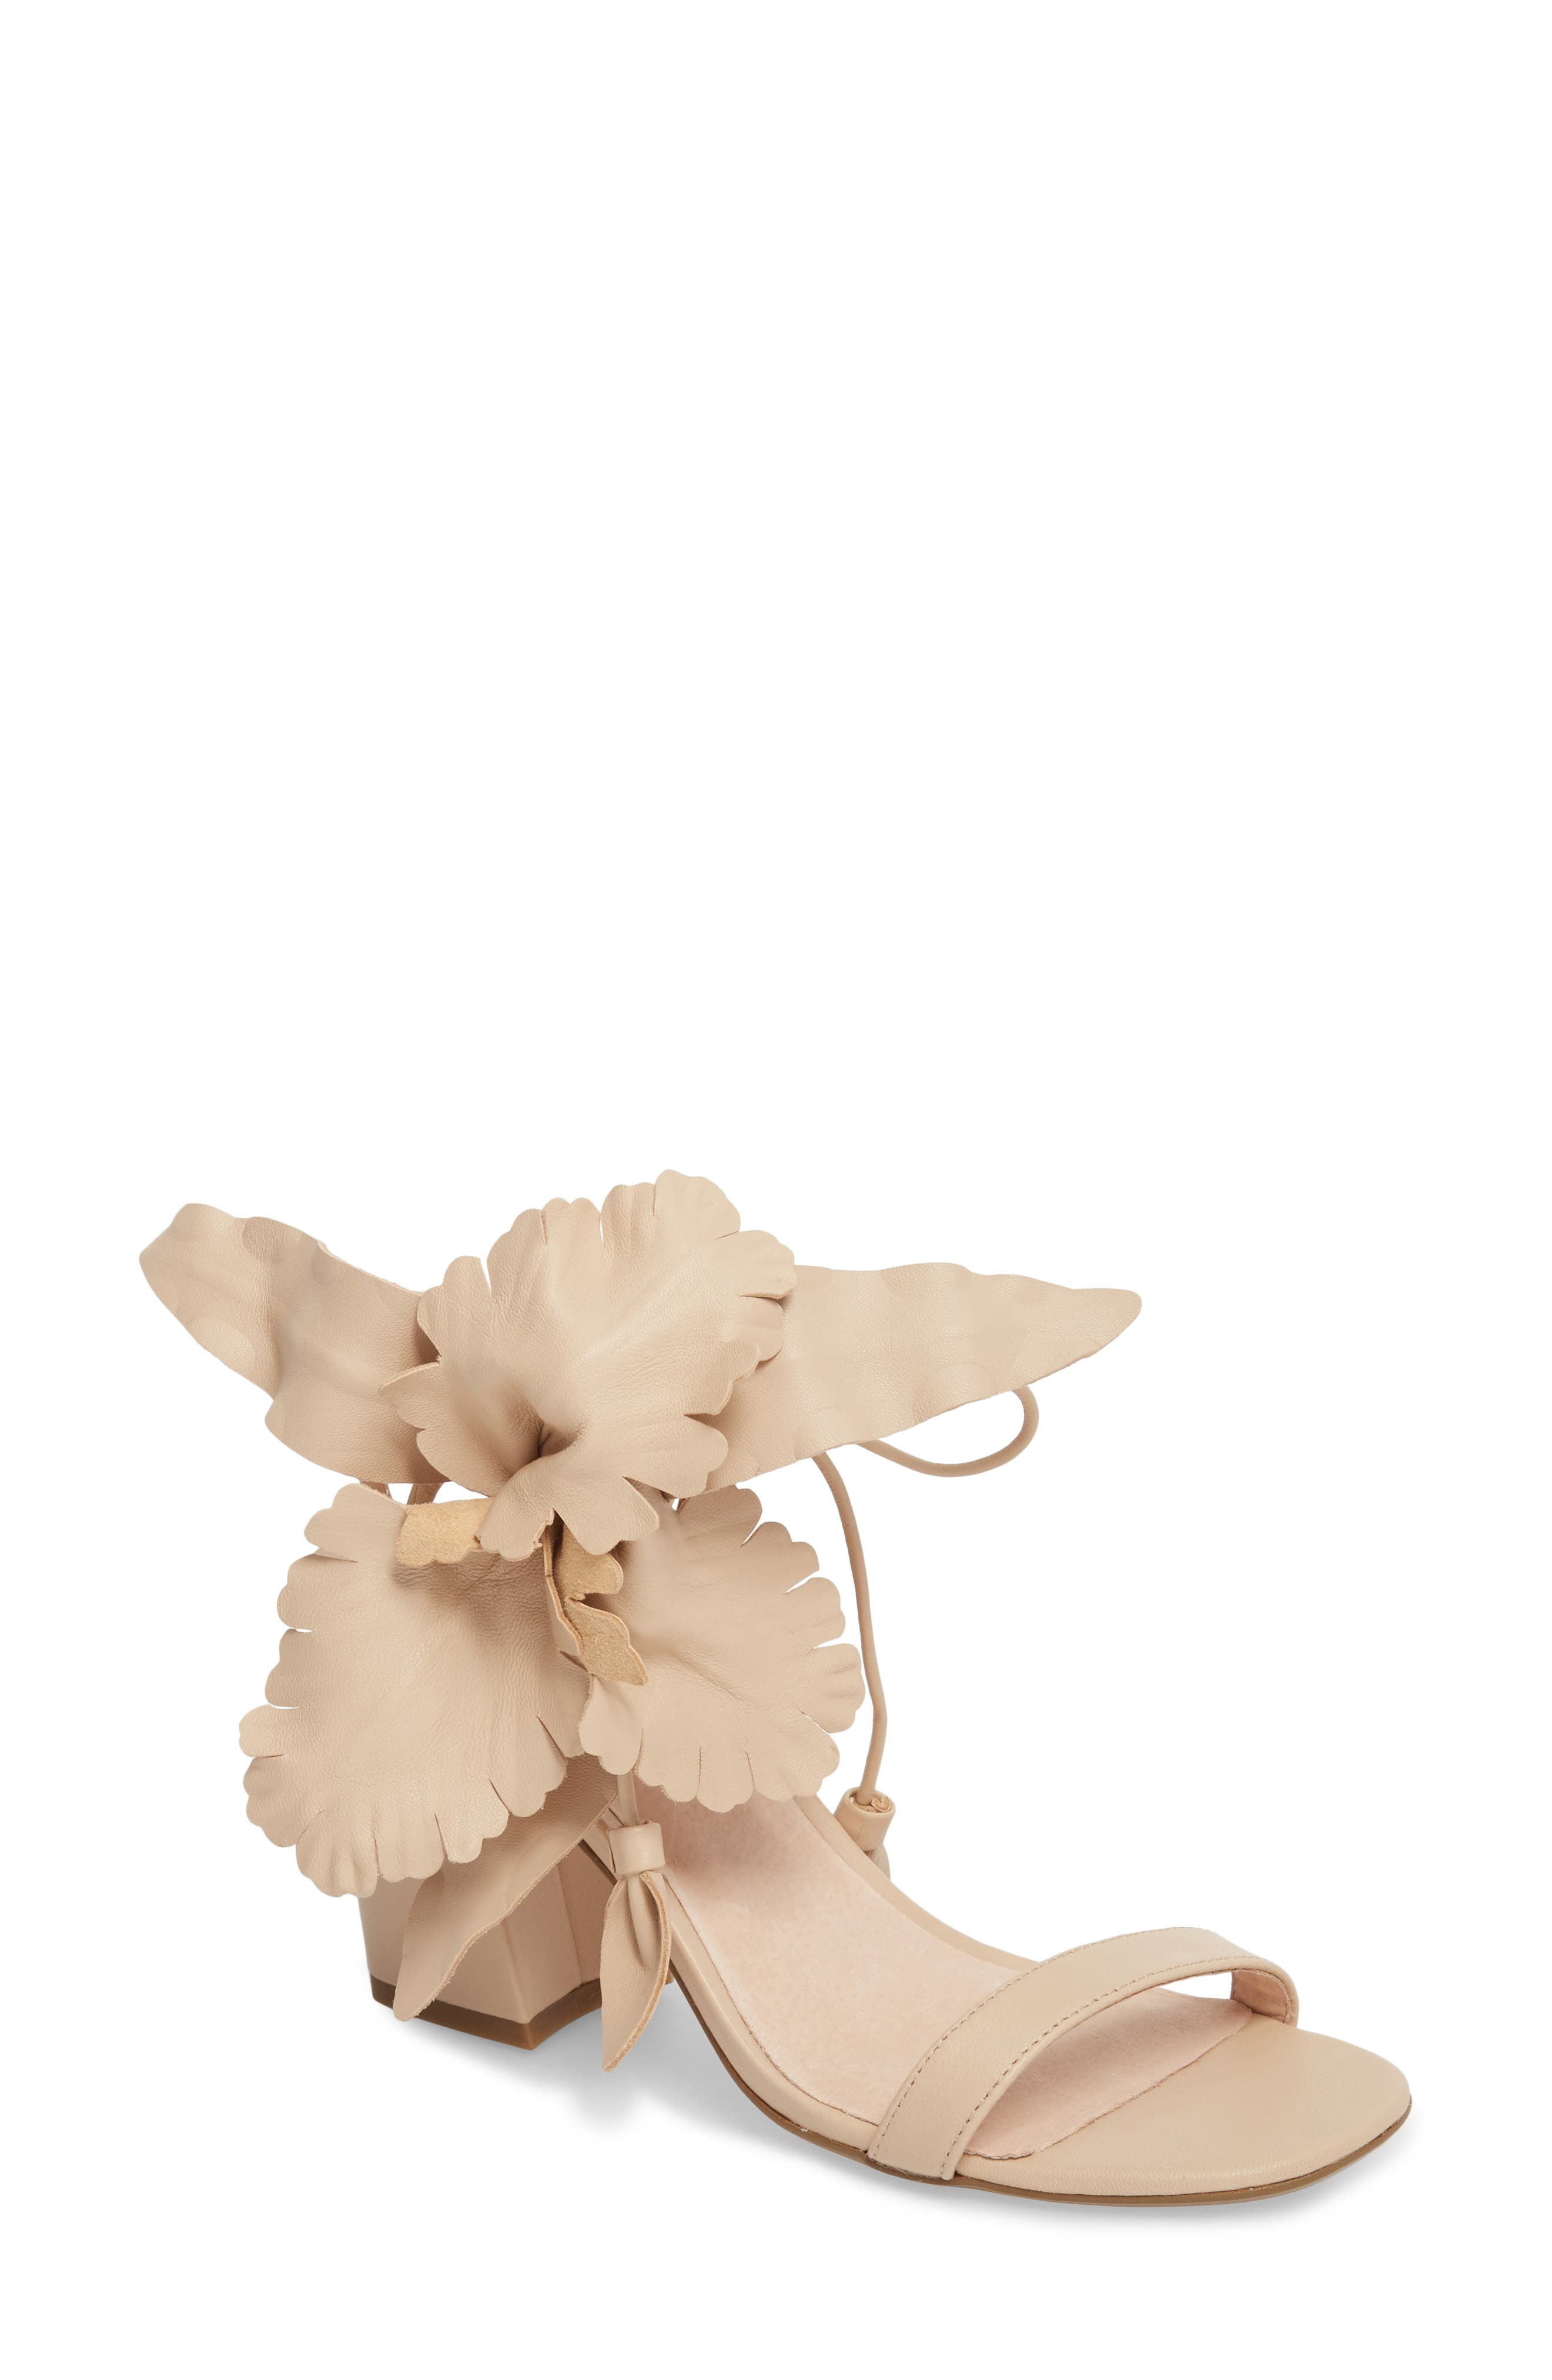 Hibiscus Sandal,                         Main,                         color, Nude Leather